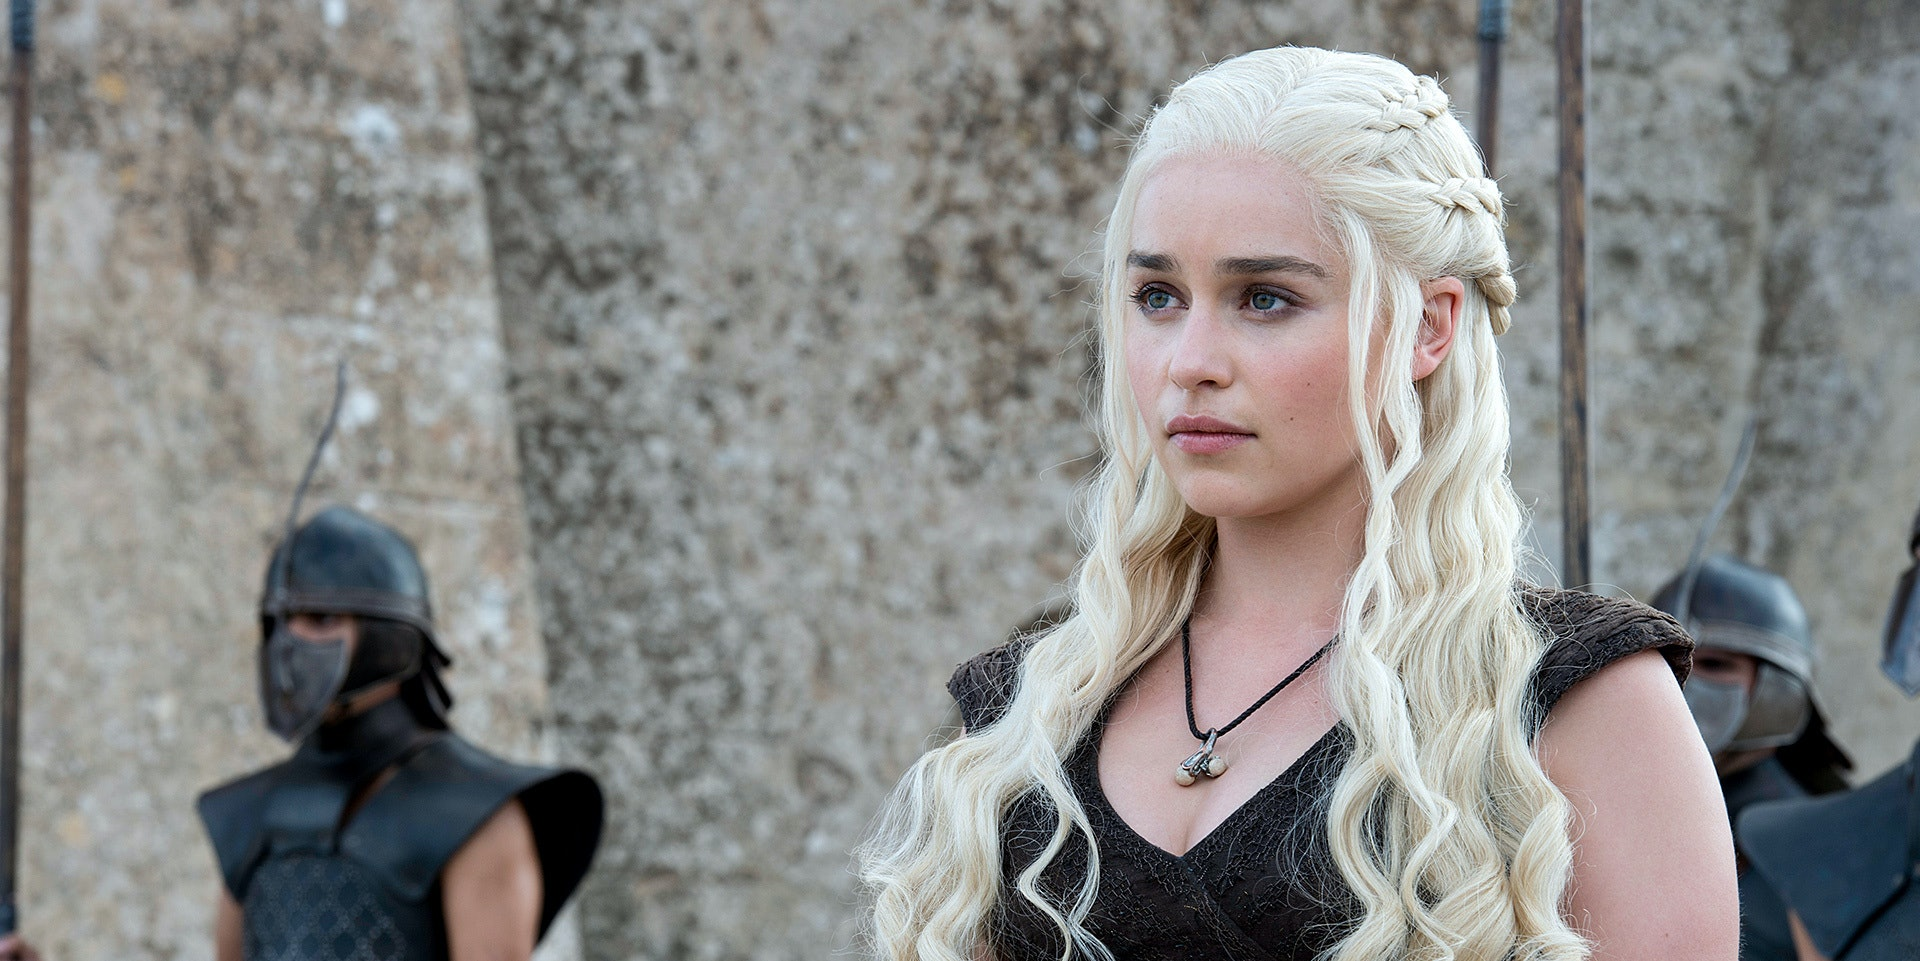 Daenerys Targaryen in 'Game of Thrones'